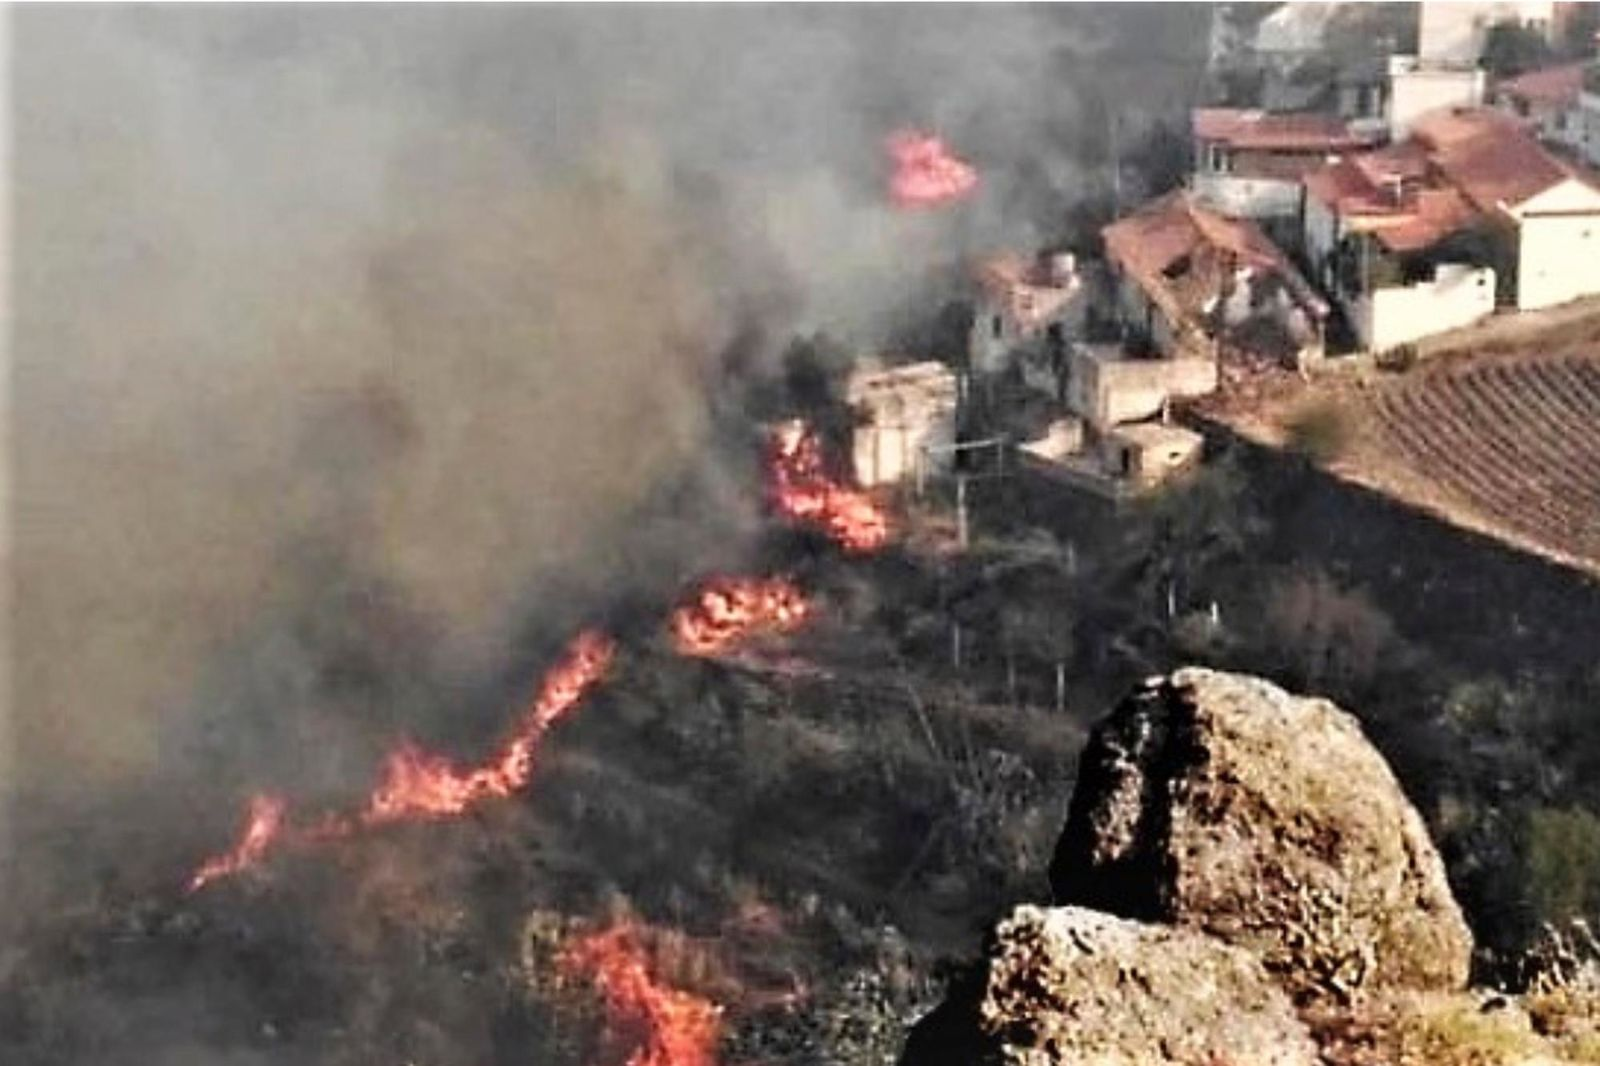 In this photo issued by Cabildo de Gran Canaria, flames from a forest fire burn close to houses in El Rincon, Tejeda on the Spanish Gran Canaria island on Sunday Aug. 18, 2019.(Cabildo de Gran Canaria Via AP)